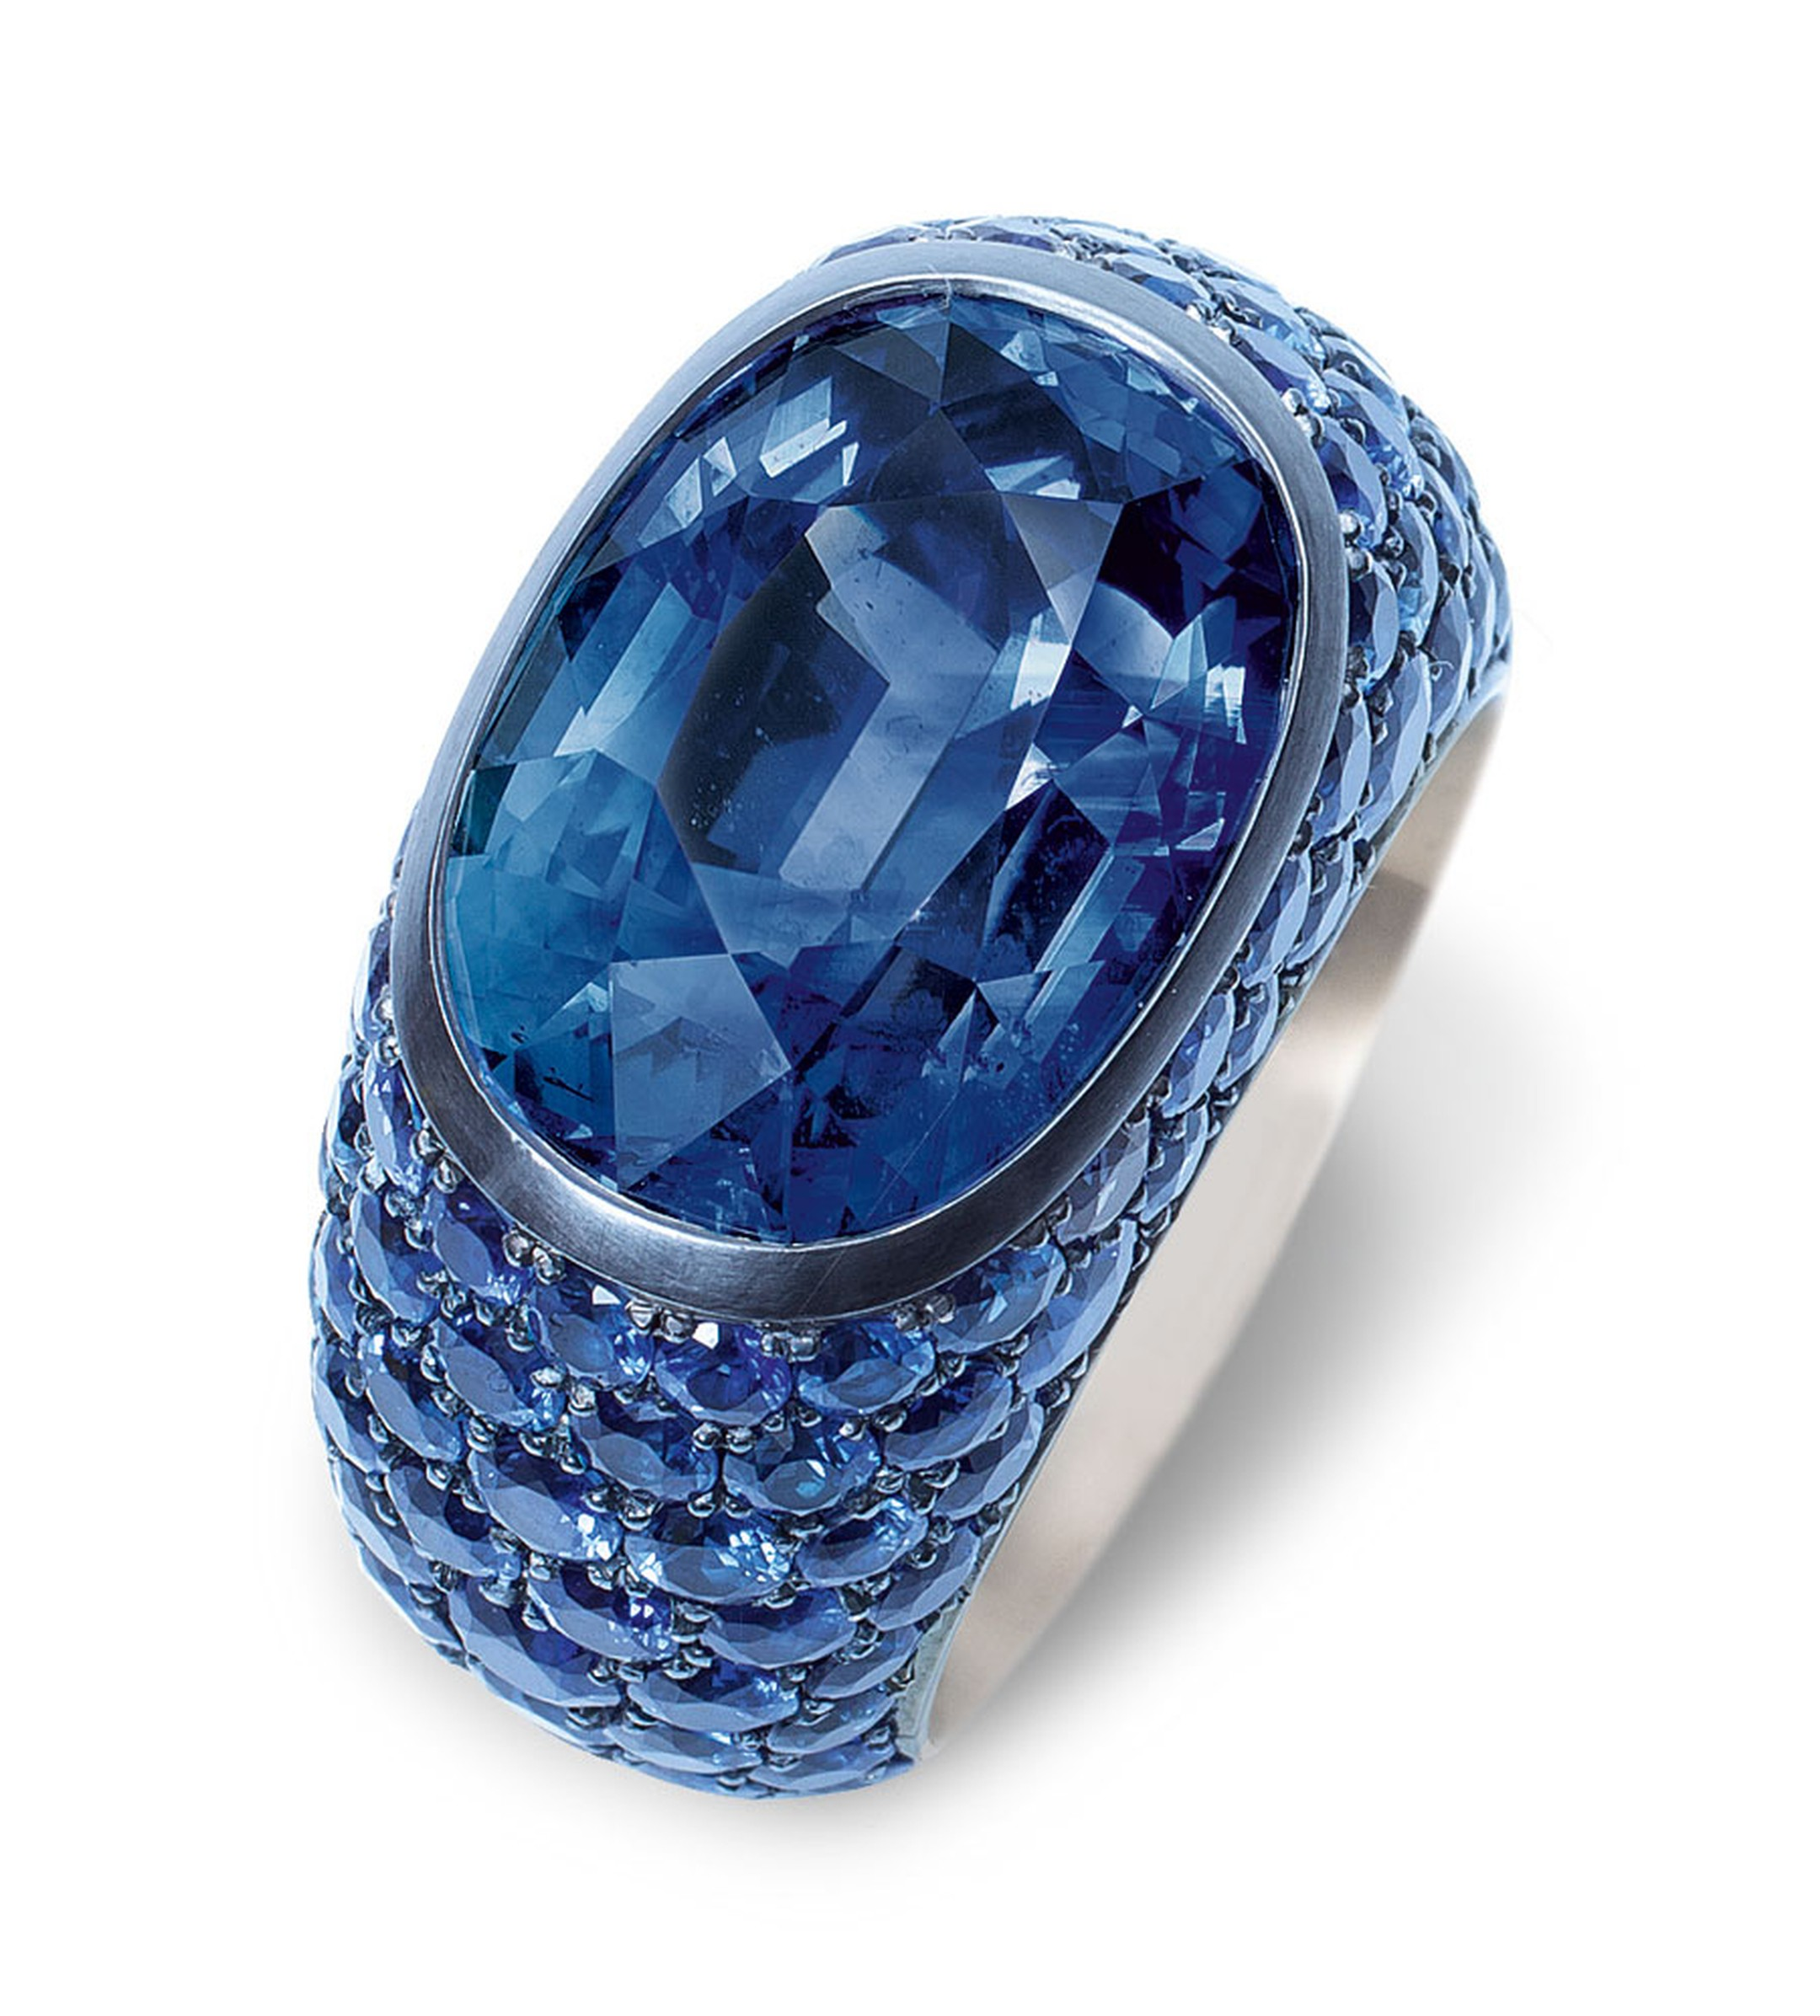 Hemmerle-ring-silver-white-gold--blue-sapphire-cts-blue-sapphires-0179.jpg